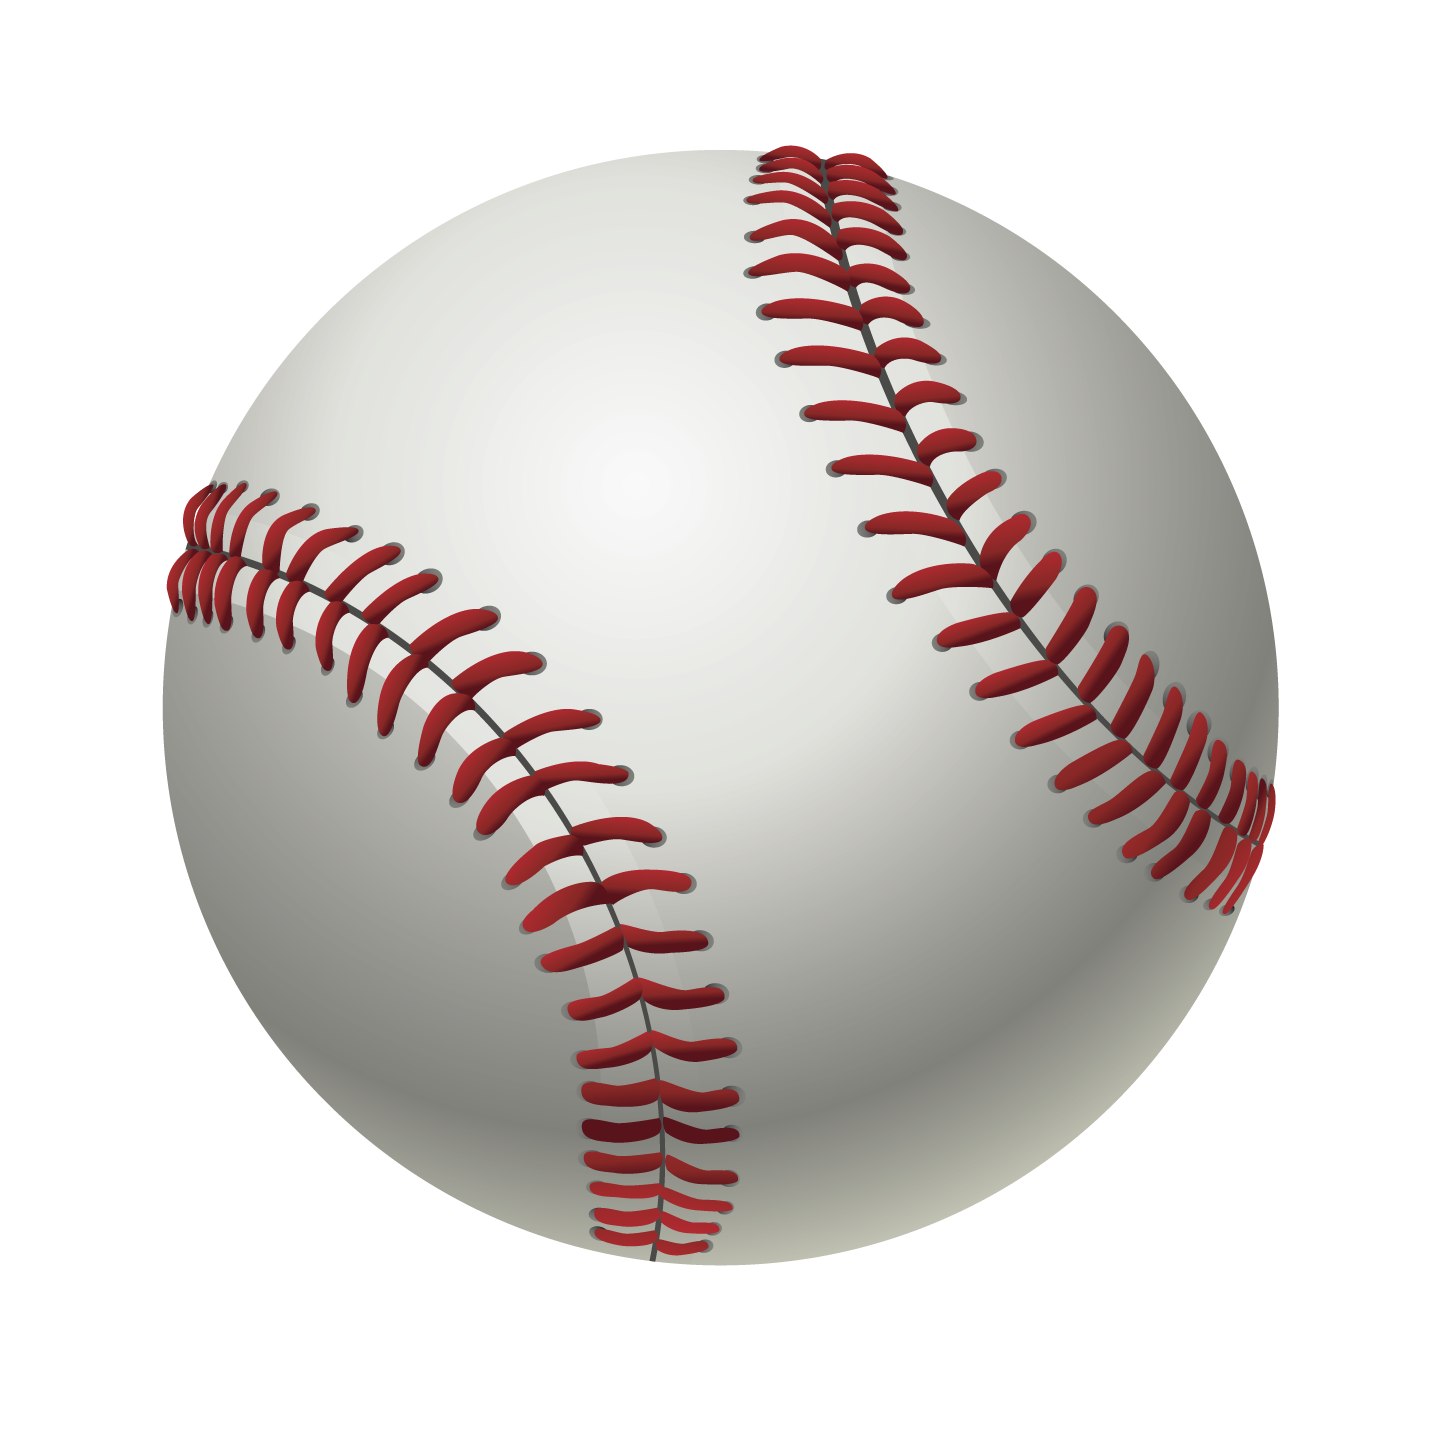 Baseball clipart vector free download graphic transparent stock Free Download Of Baseball Icon Clipart #35335 - Free Icons and PNG ... graphic transparent stock